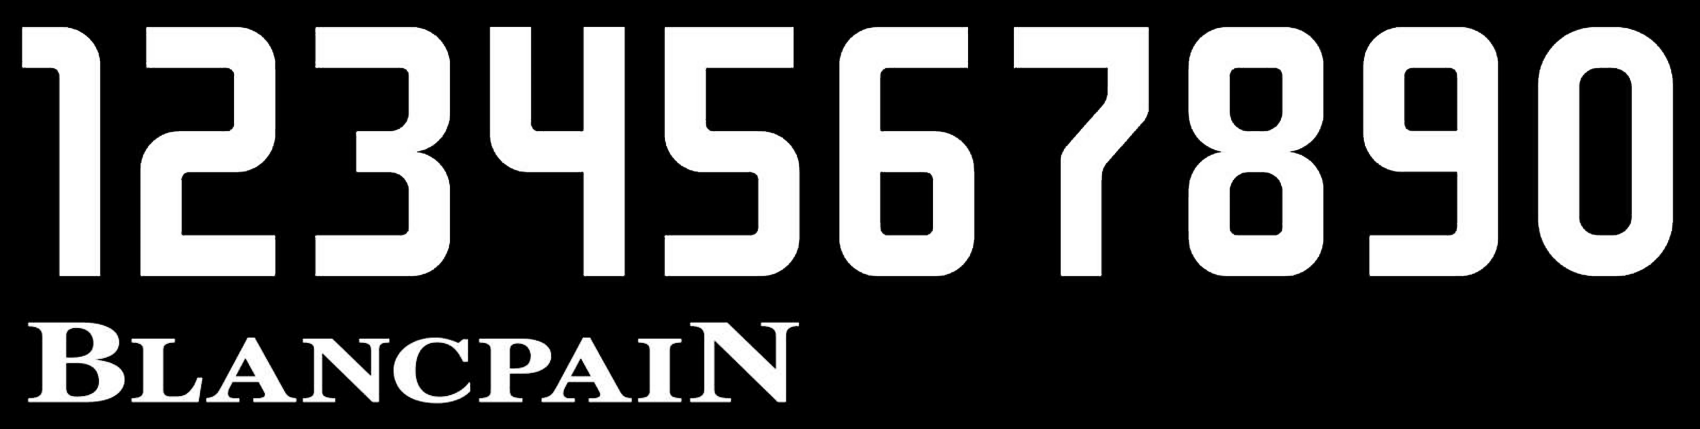 white_numeral_Blancpain.png